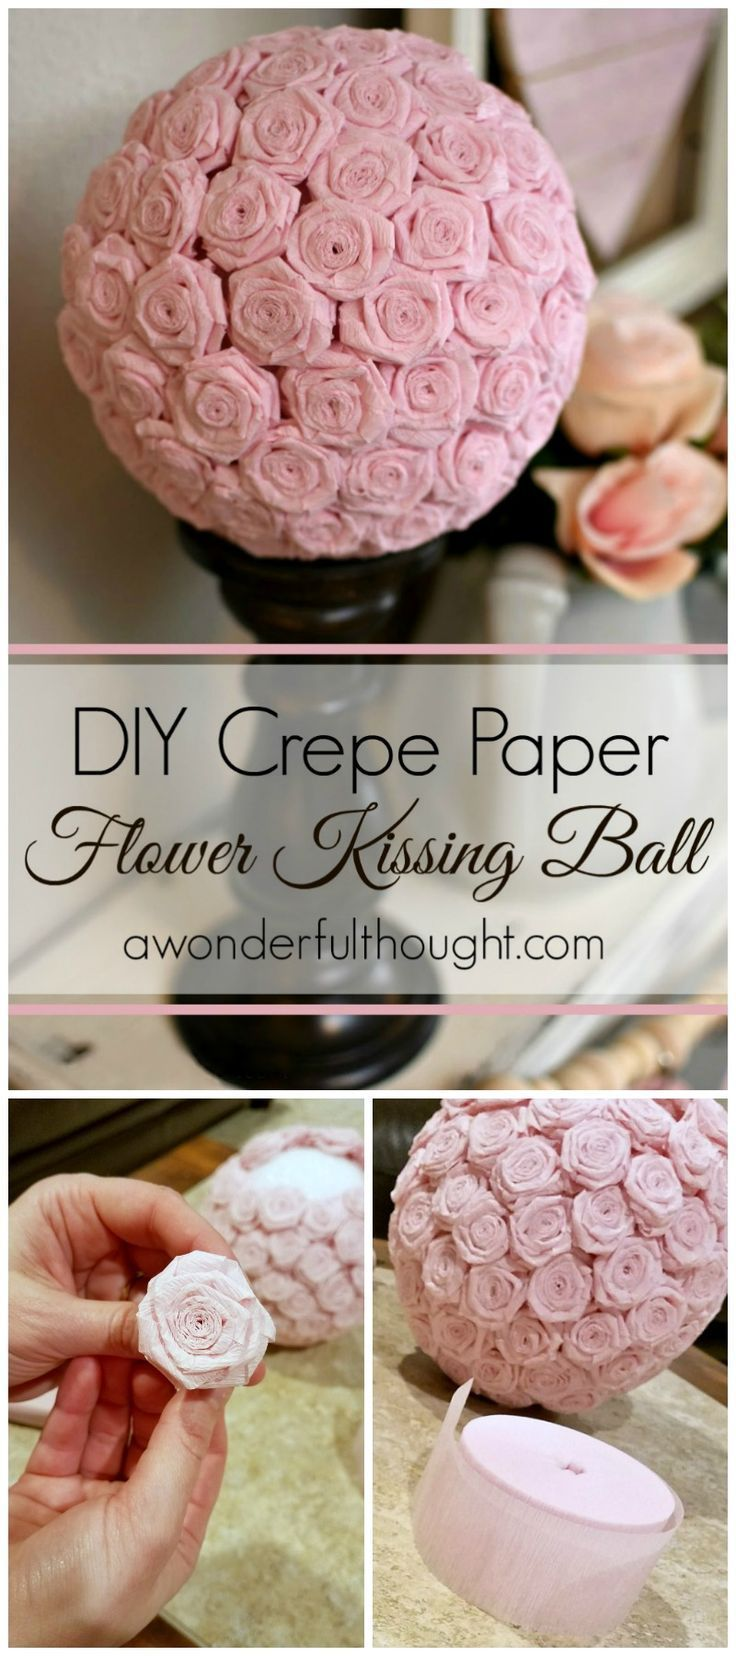 Diy crepe paper flower kissing ball crafty ideas pinterest learn how to make a diy crepe paper flower kissing ball video included in tutorial these are great for decoration for weddings baby showers holidays and mightylinksfo